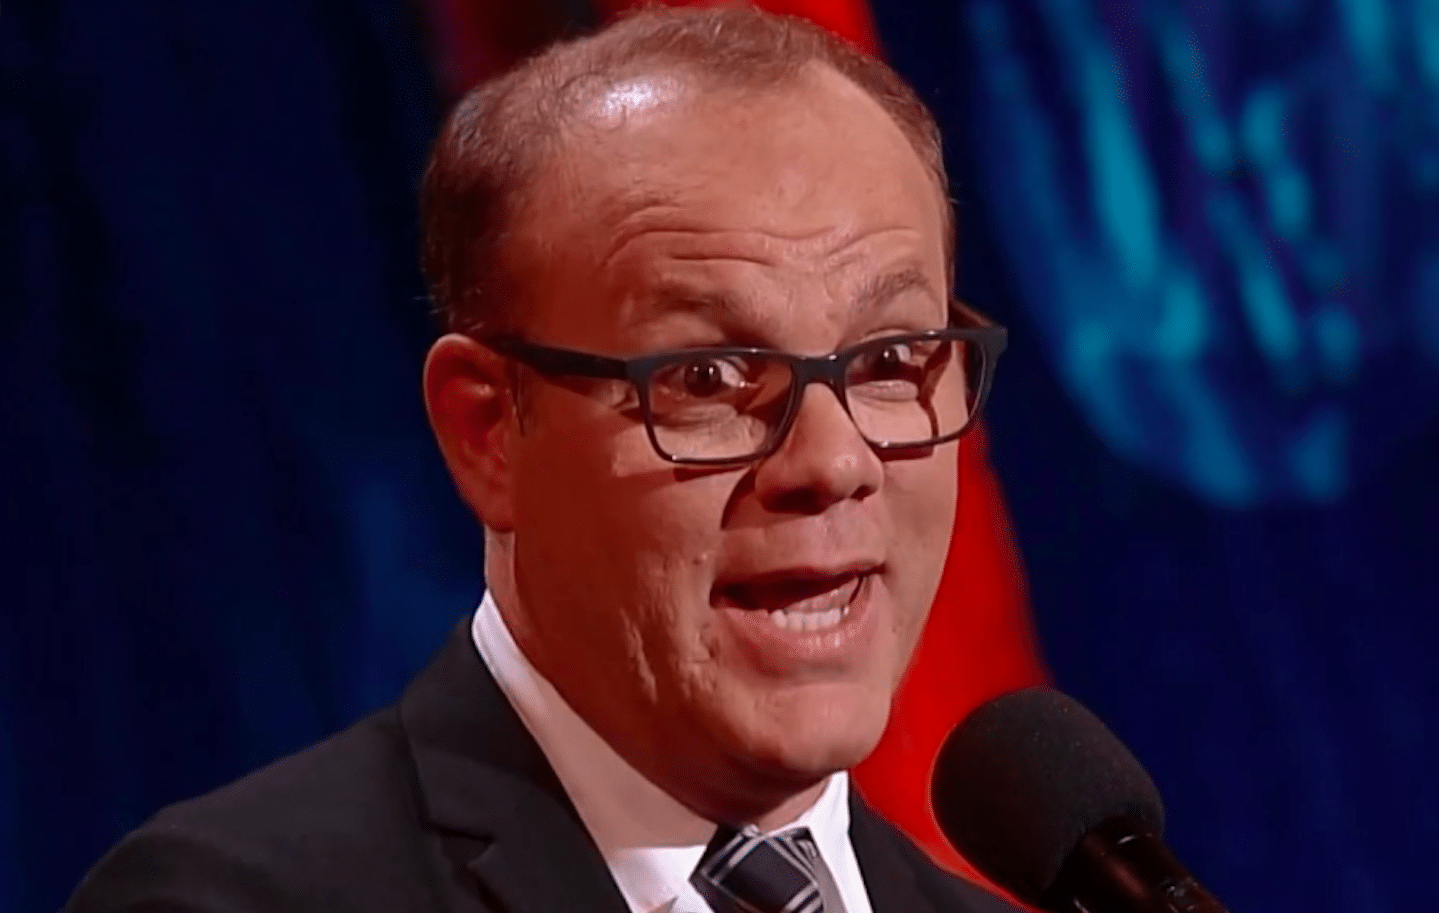 Tom Papa, the comedian, moving into cooking online.